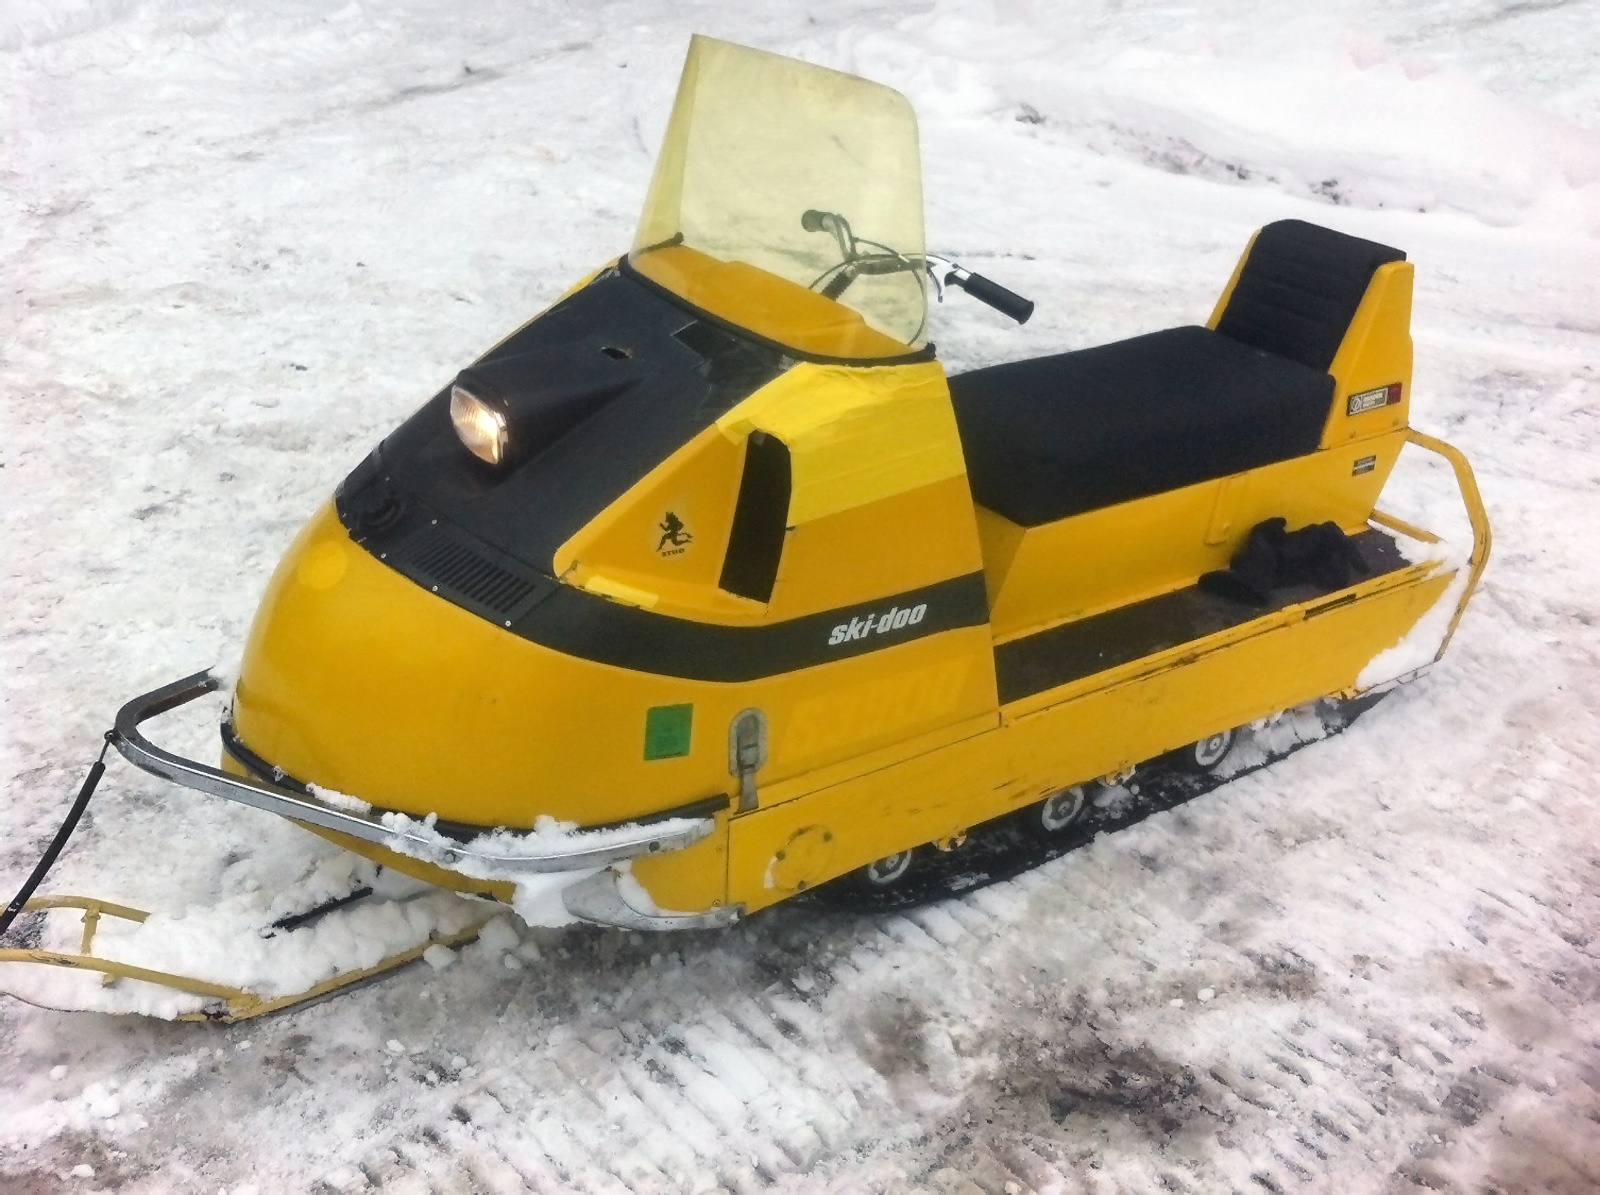 Ski Doo Alpine All New Car Release And Reviews 2010 Renegade Wiring Diagram 1970s Skidoos Pictures To Pin On Pinterest Pinsdaddy